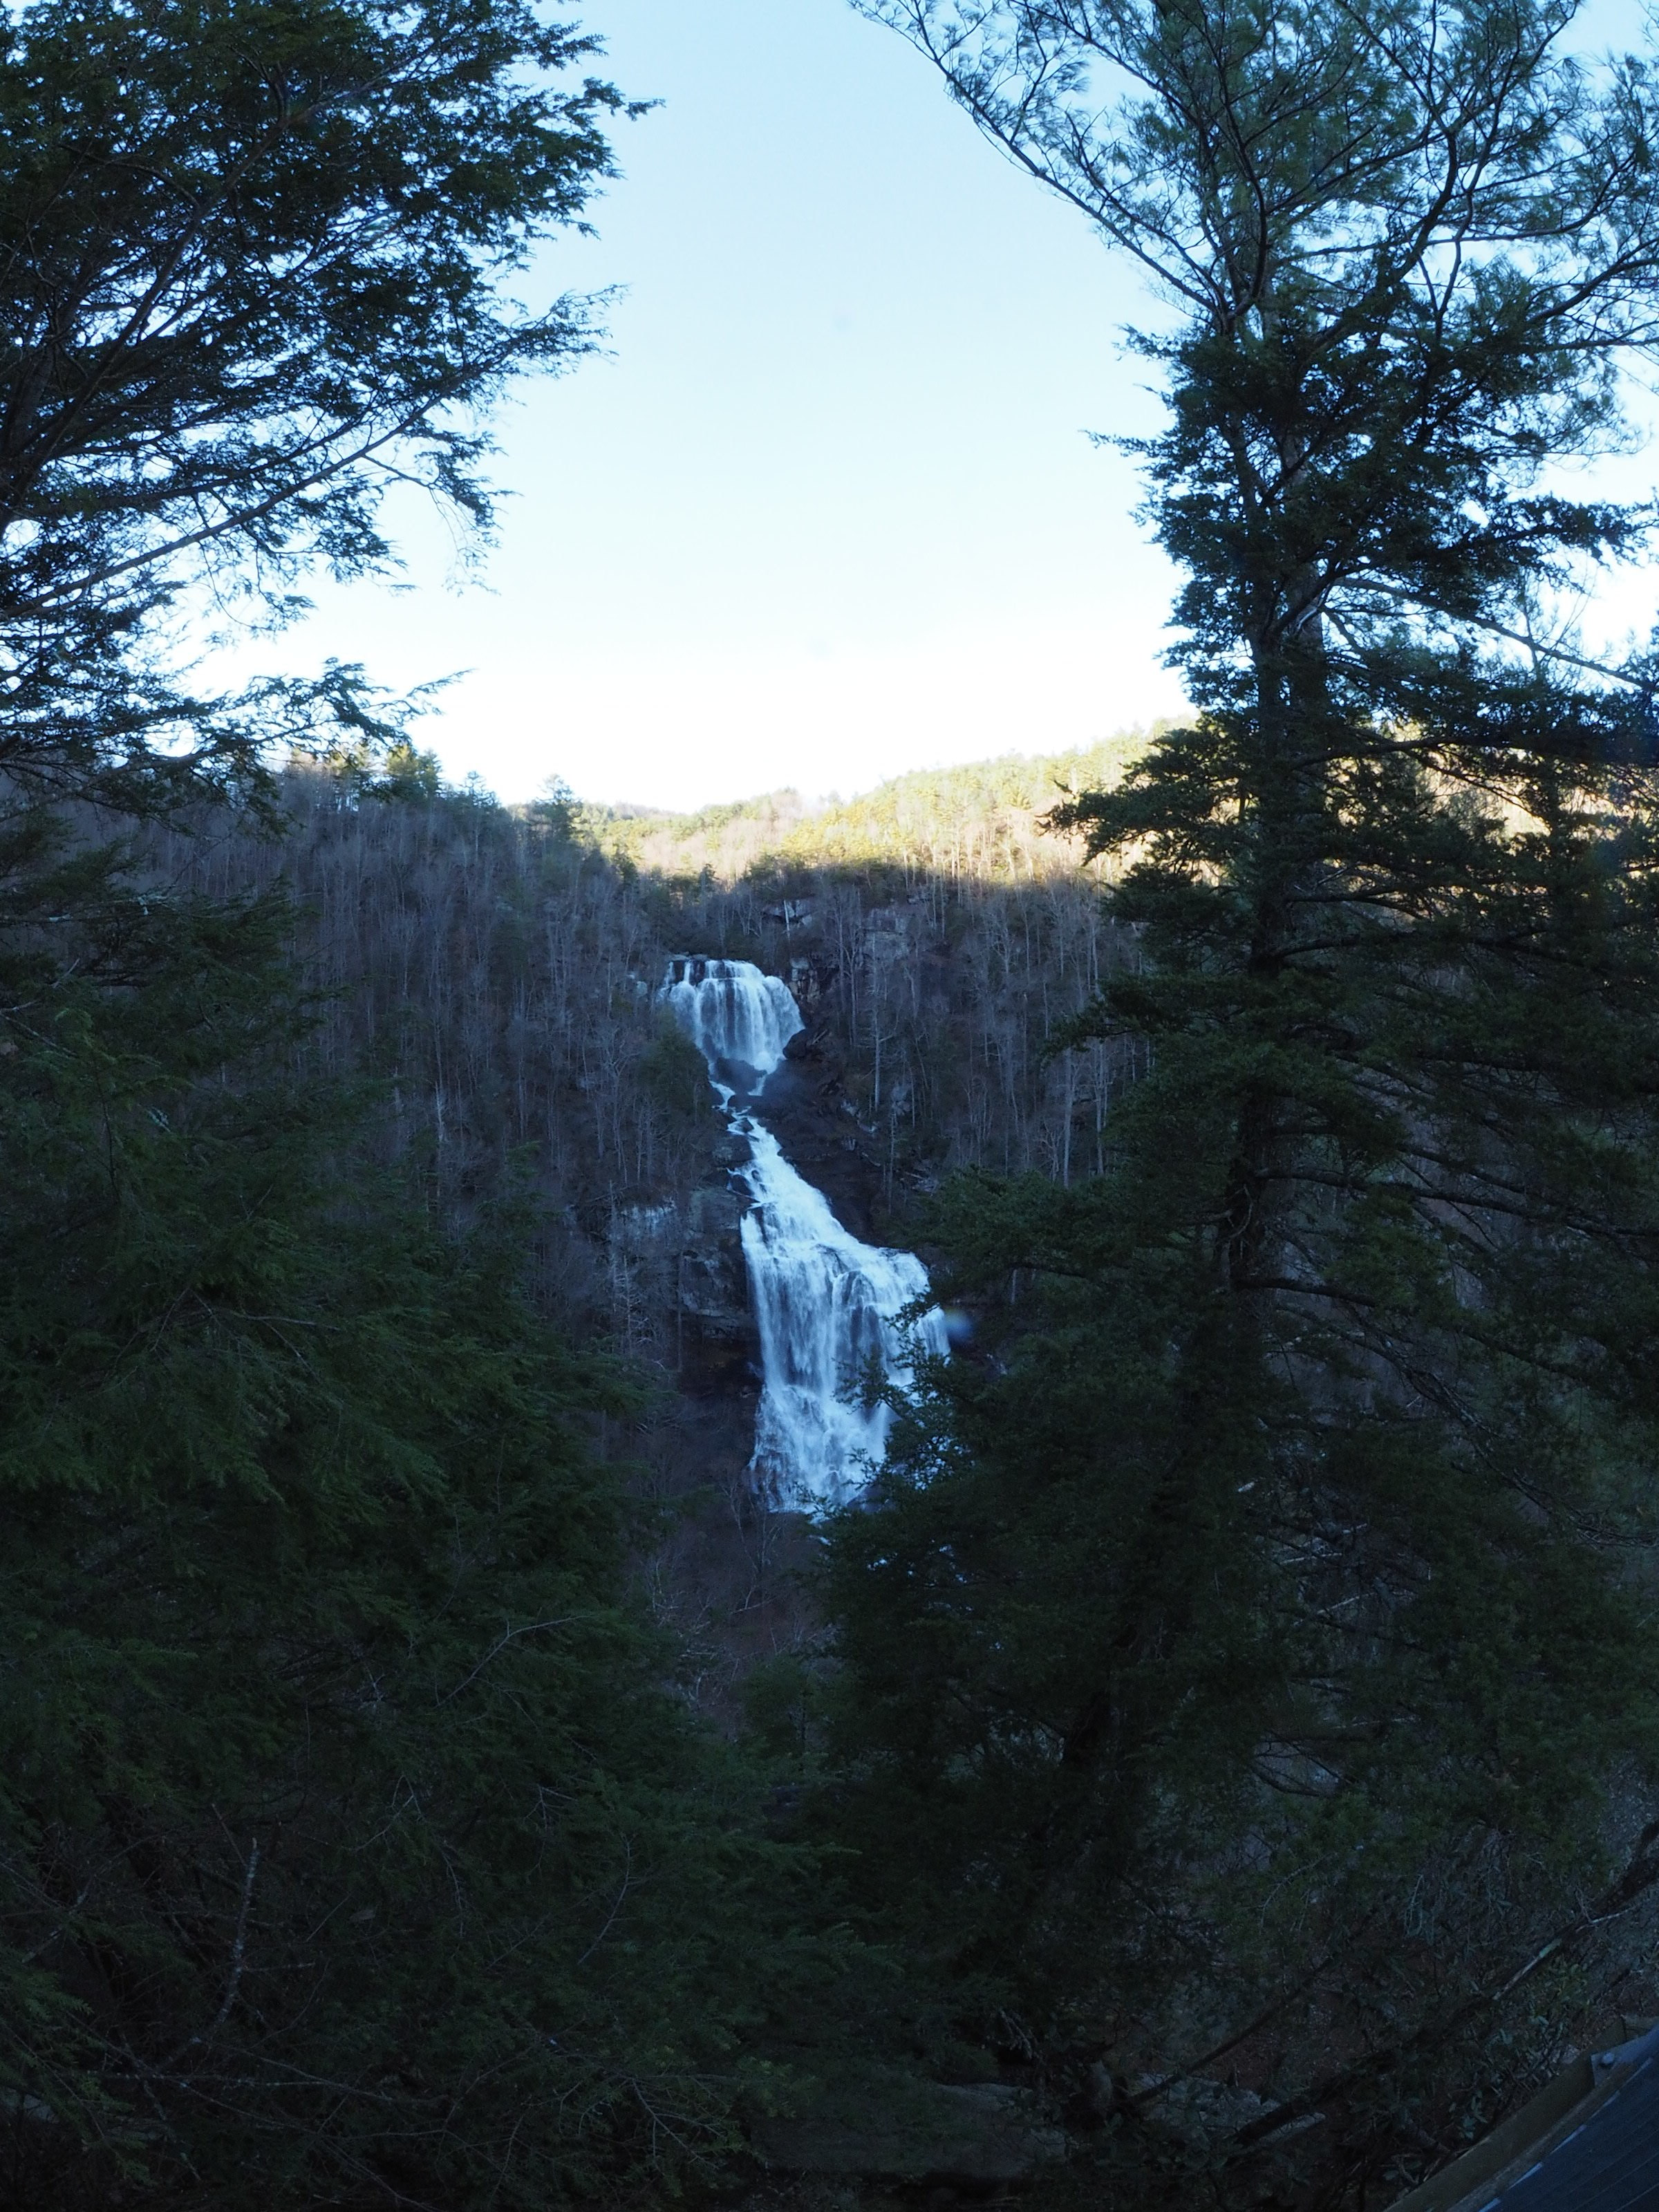 Whitewater Falls. The tallest waterfall east of the Mississippi.